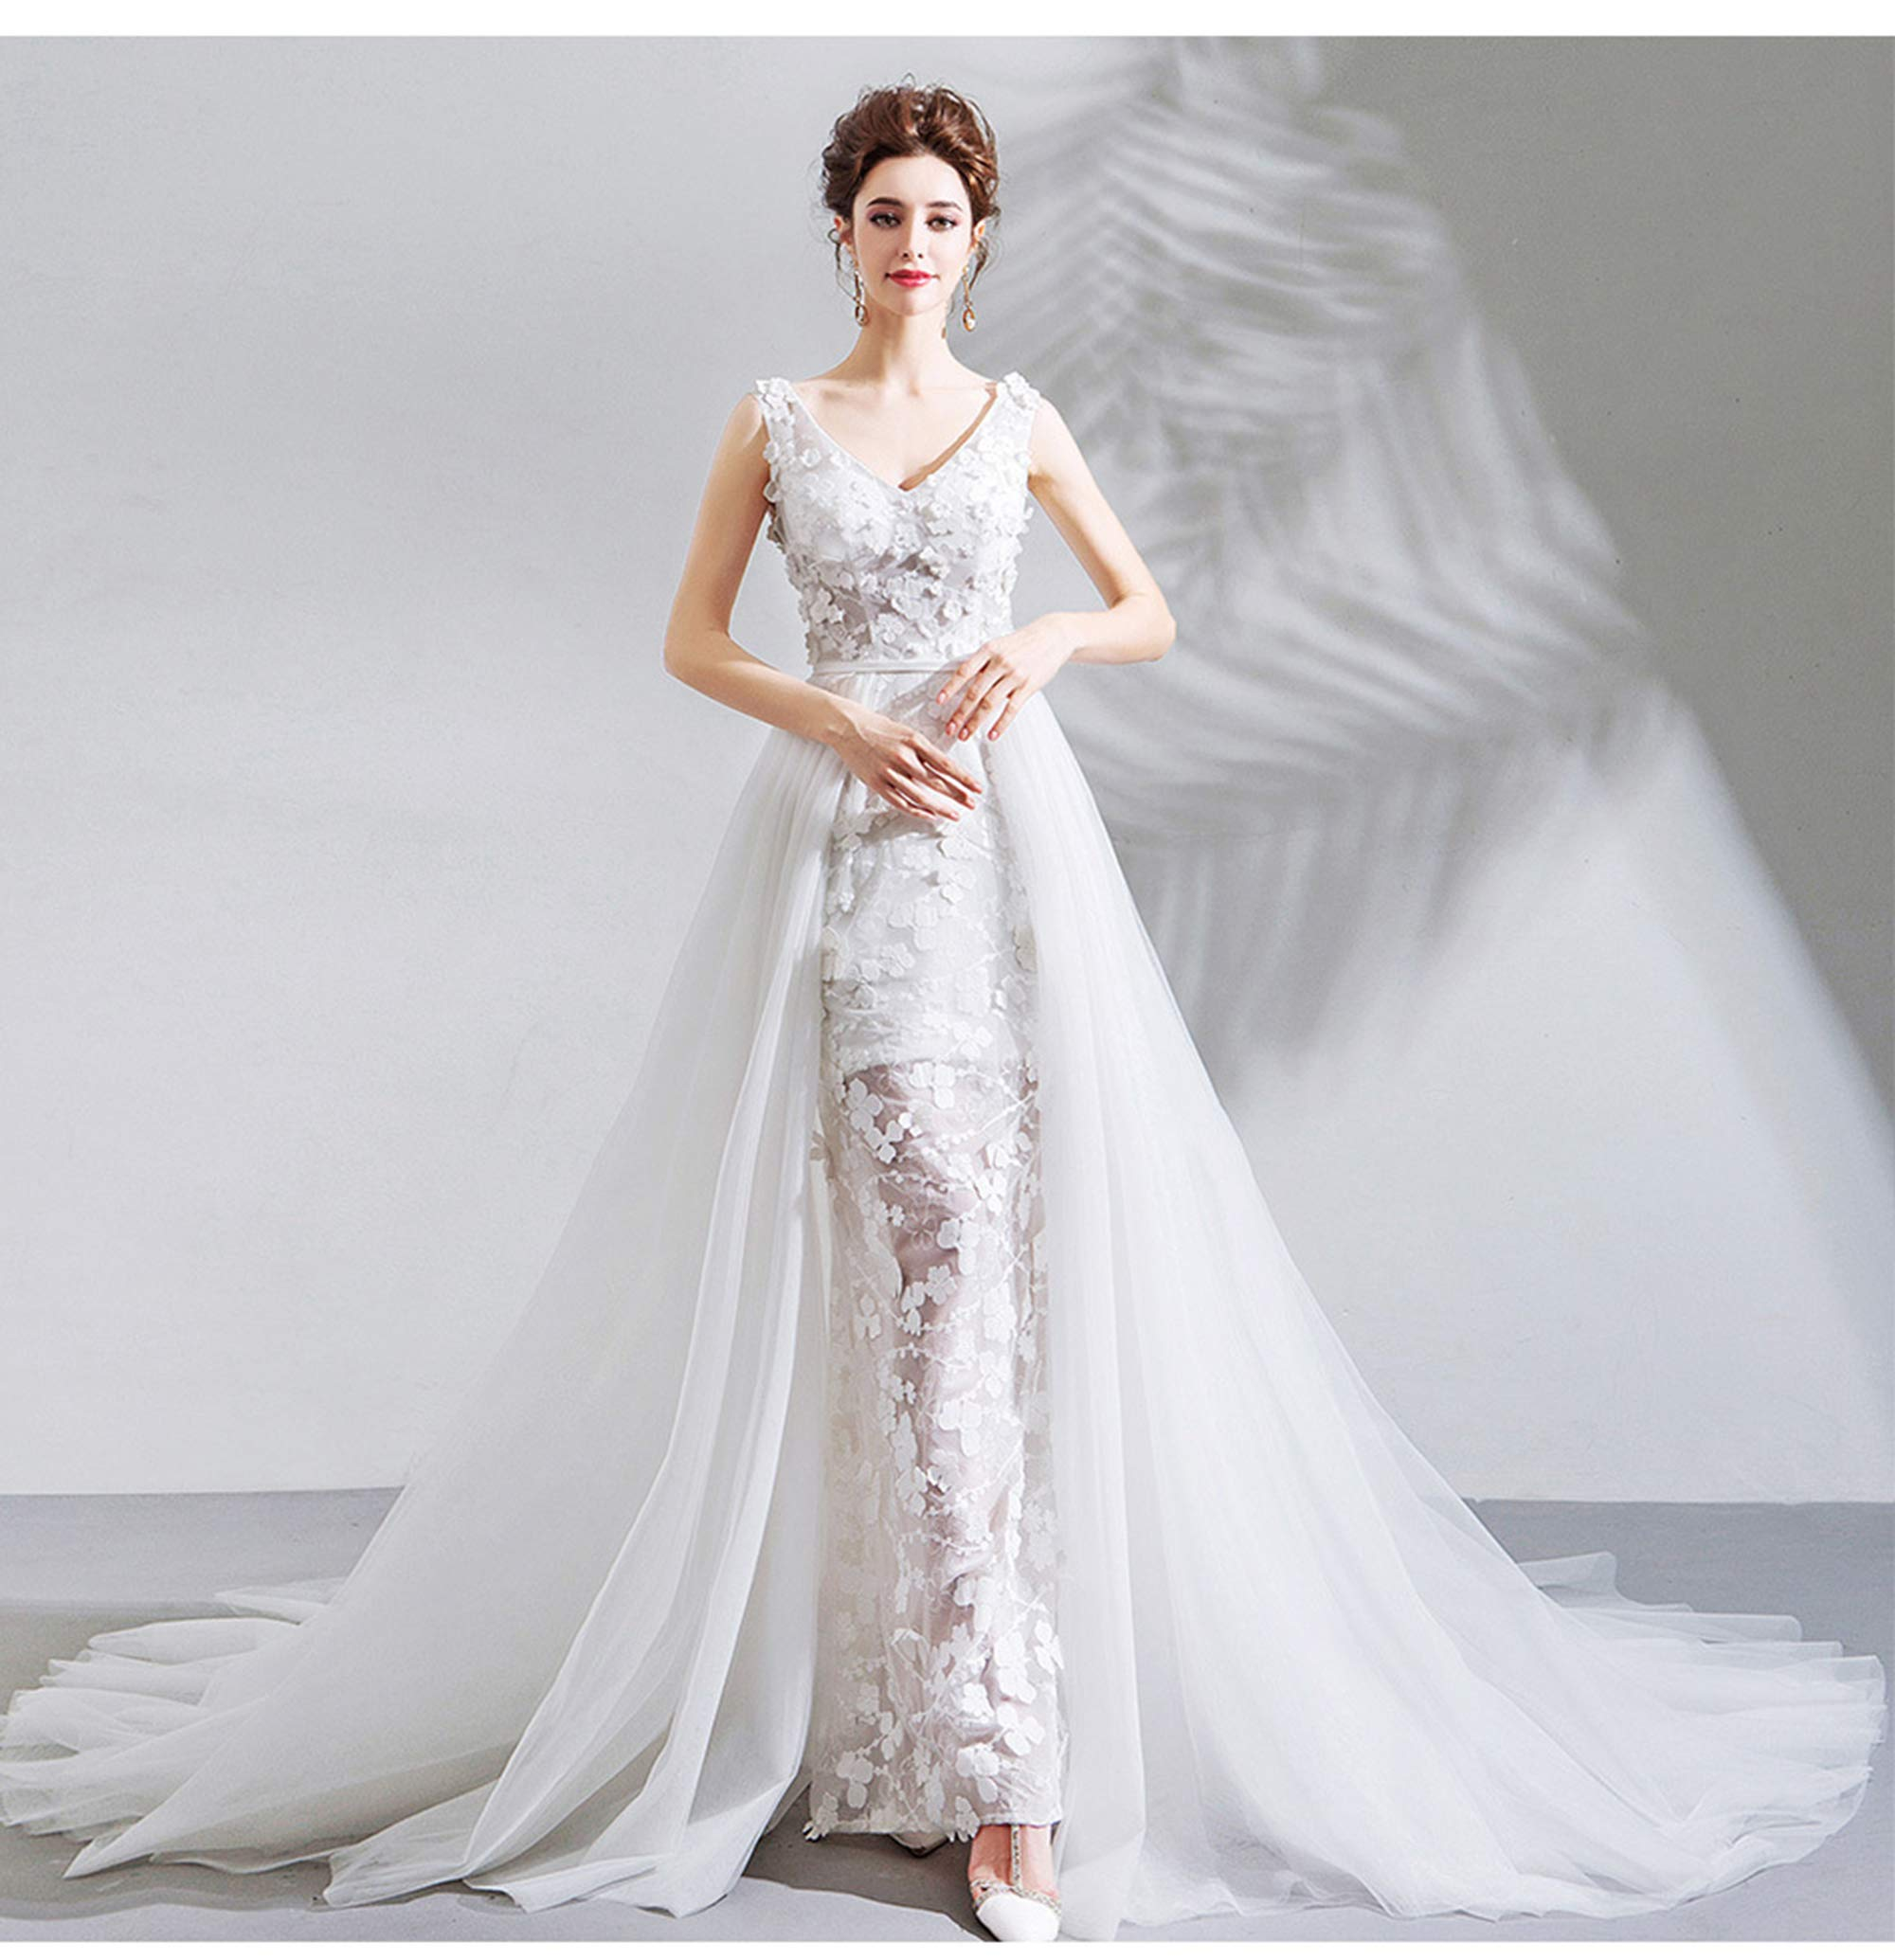 NOMSOCR Women's Lace V Neck Sleeveless Wedding Dresses Mermaid Bridal Gown (M, White) by NOMSOCR (Image #6)